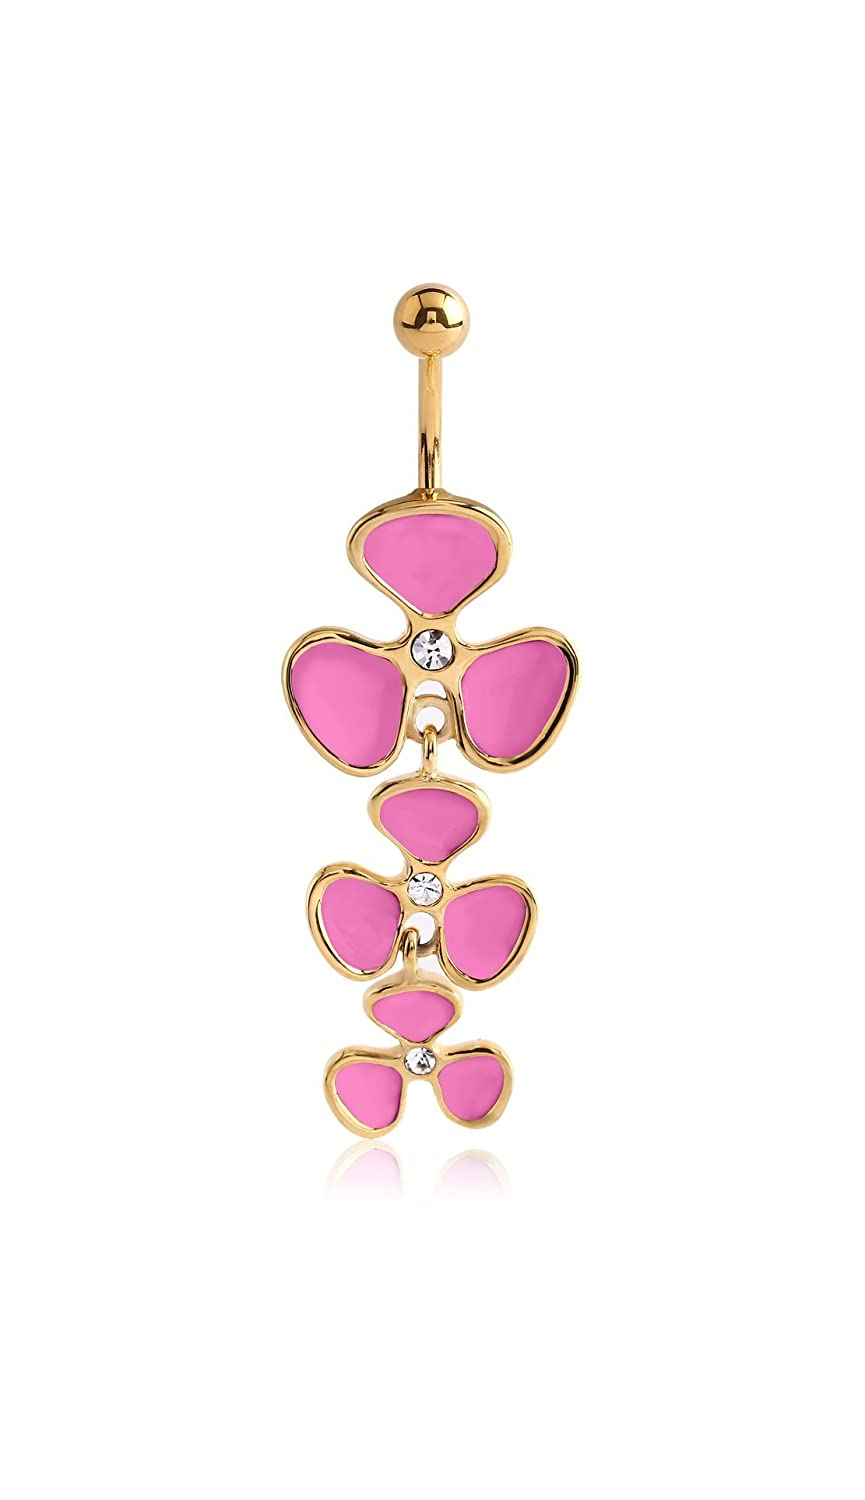 Pupick Bellybutton Ring Body Piercing Jewelry Gold Surgical Steel Jeweled Banana 14g Multiple Style